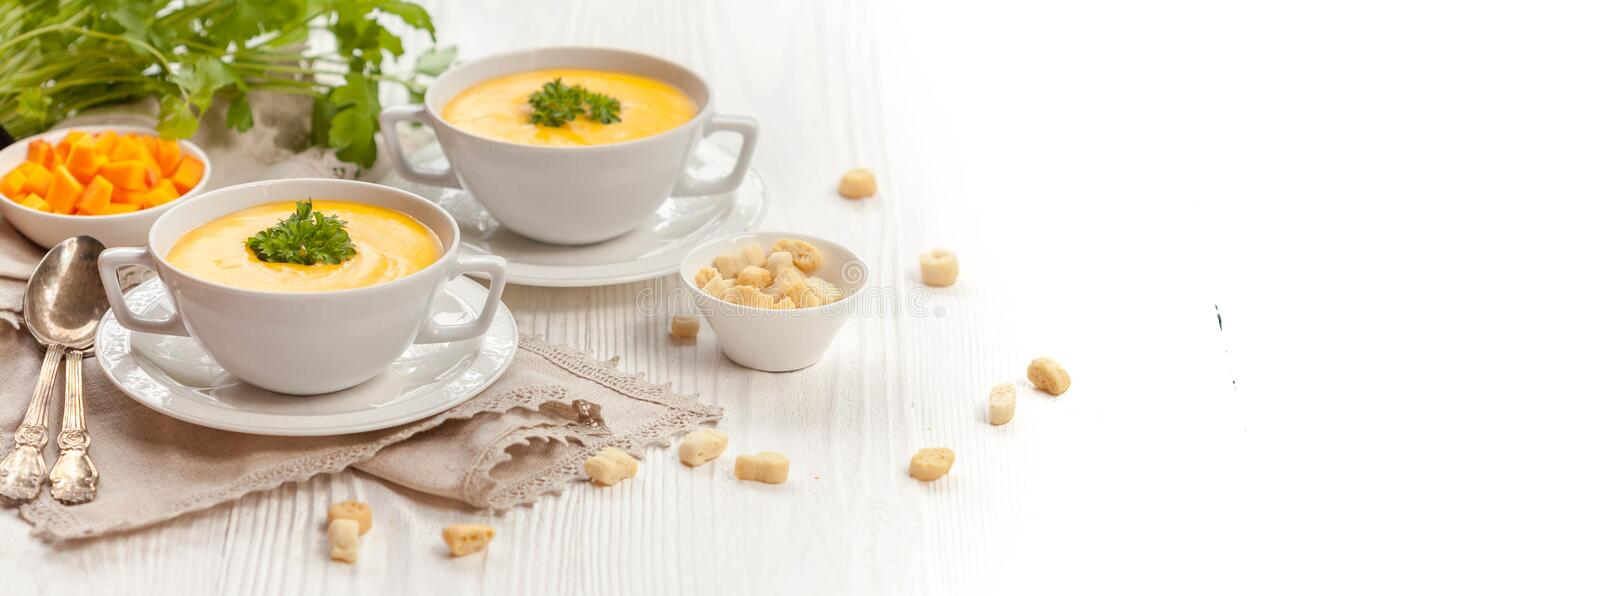 Pumpkin cream soup. With croutons, raw fresh pumpkin pieces and herbs on a white rustic wooden background, Autumn concept. Long web format, banner royalty free stock photography